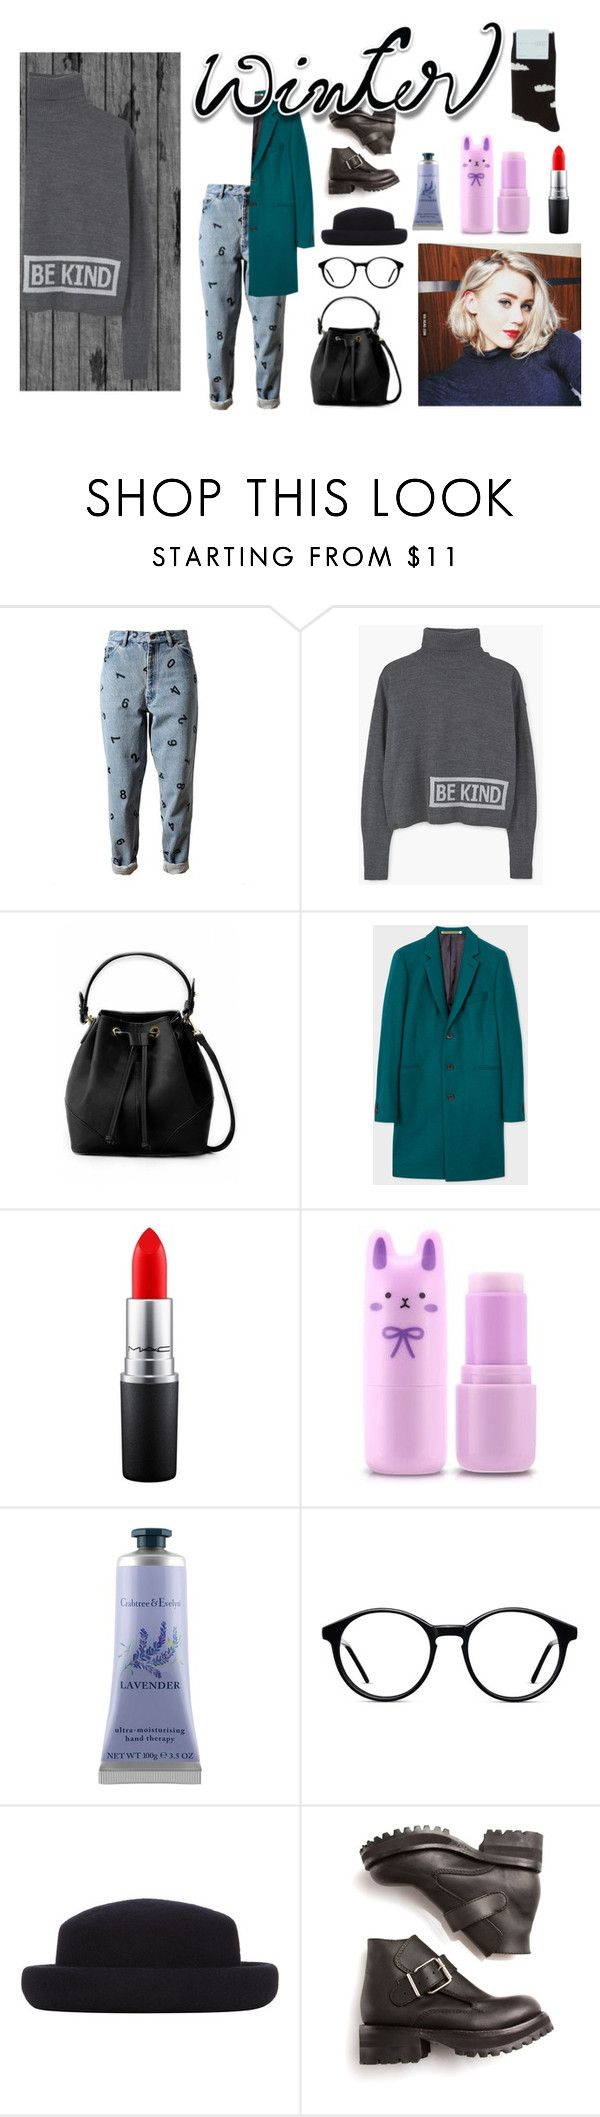 """""""Inspired by Josefine Pettersen"""" by iinacupcake ❤ liked on Polyvore featuring Ashish, MANGO, MAC Cosmetics, Tony Moly, Crabtree & Evelyn, Topshop, Opening Ceremony, Hansel from Basel and wintersweater"""